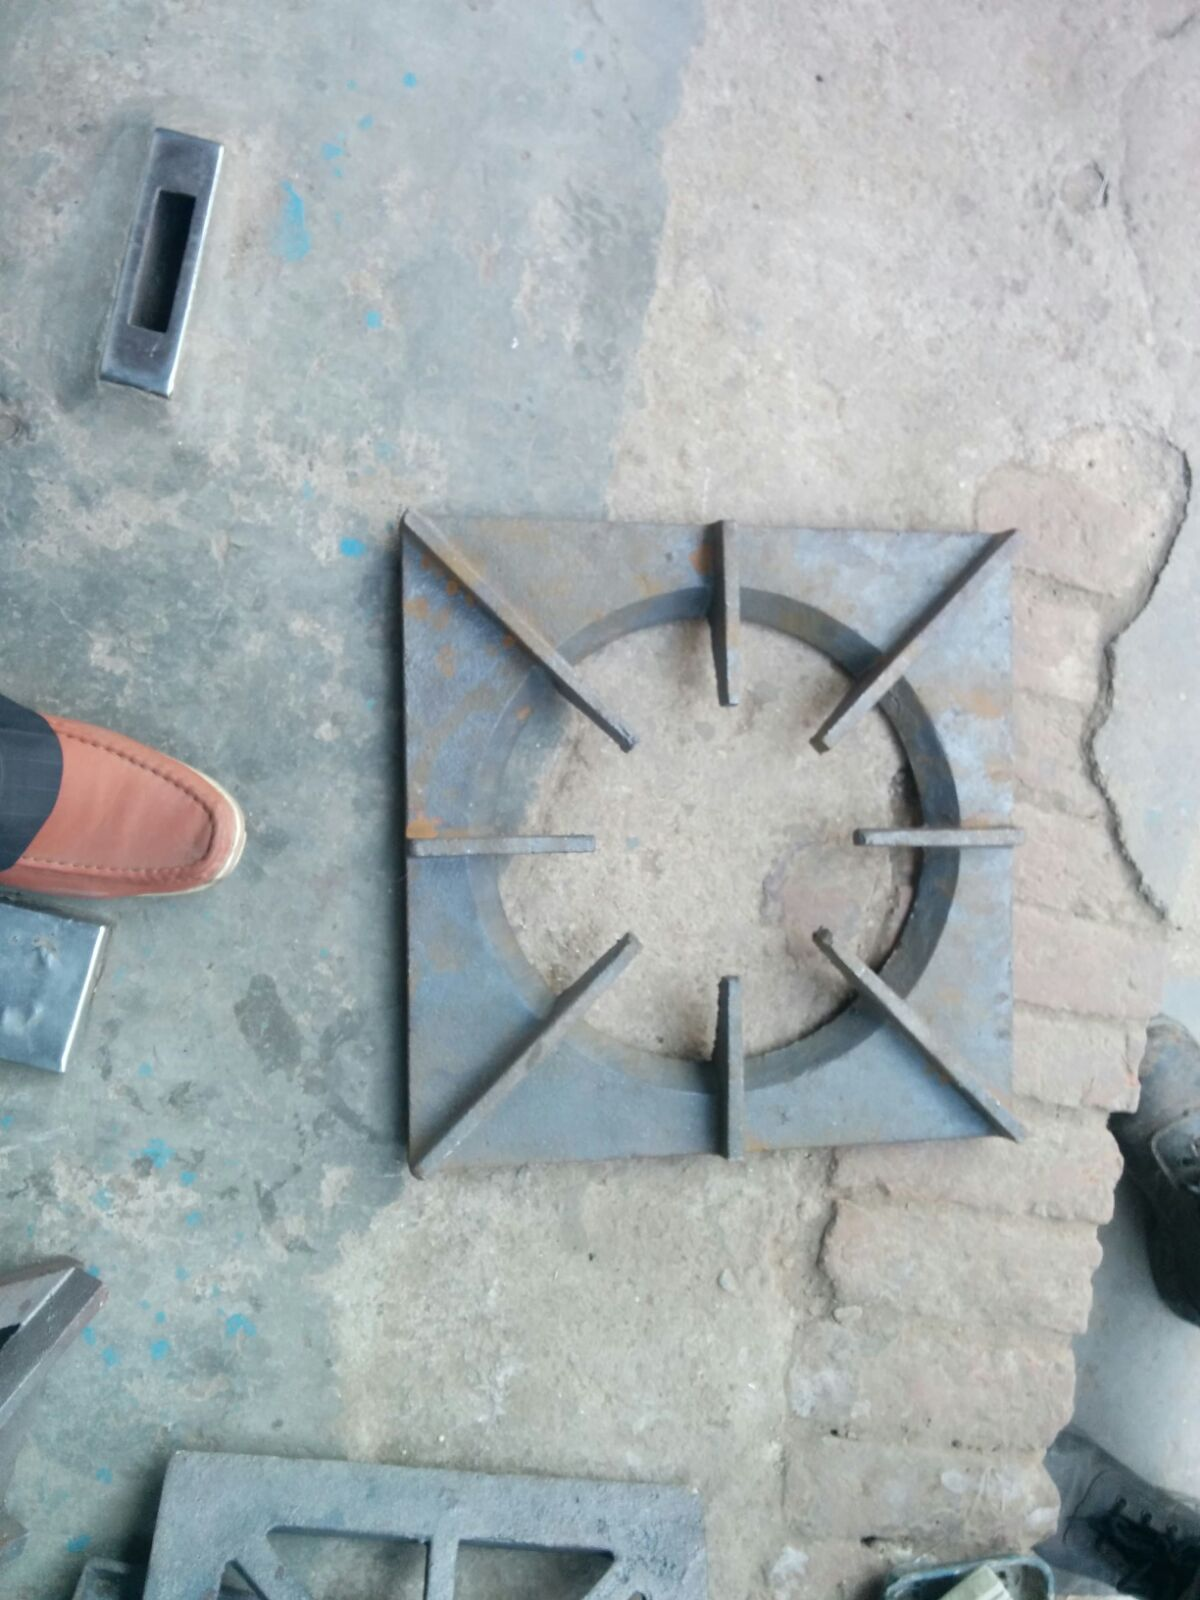 CASTING PAN SUPPORT FOR HOTEL BURNER RANGE   Cast Iron  Pan Support  For Cooking Ranges For Hotels Restaurants Canteen etc   Pan support available sizes:- 1. 10